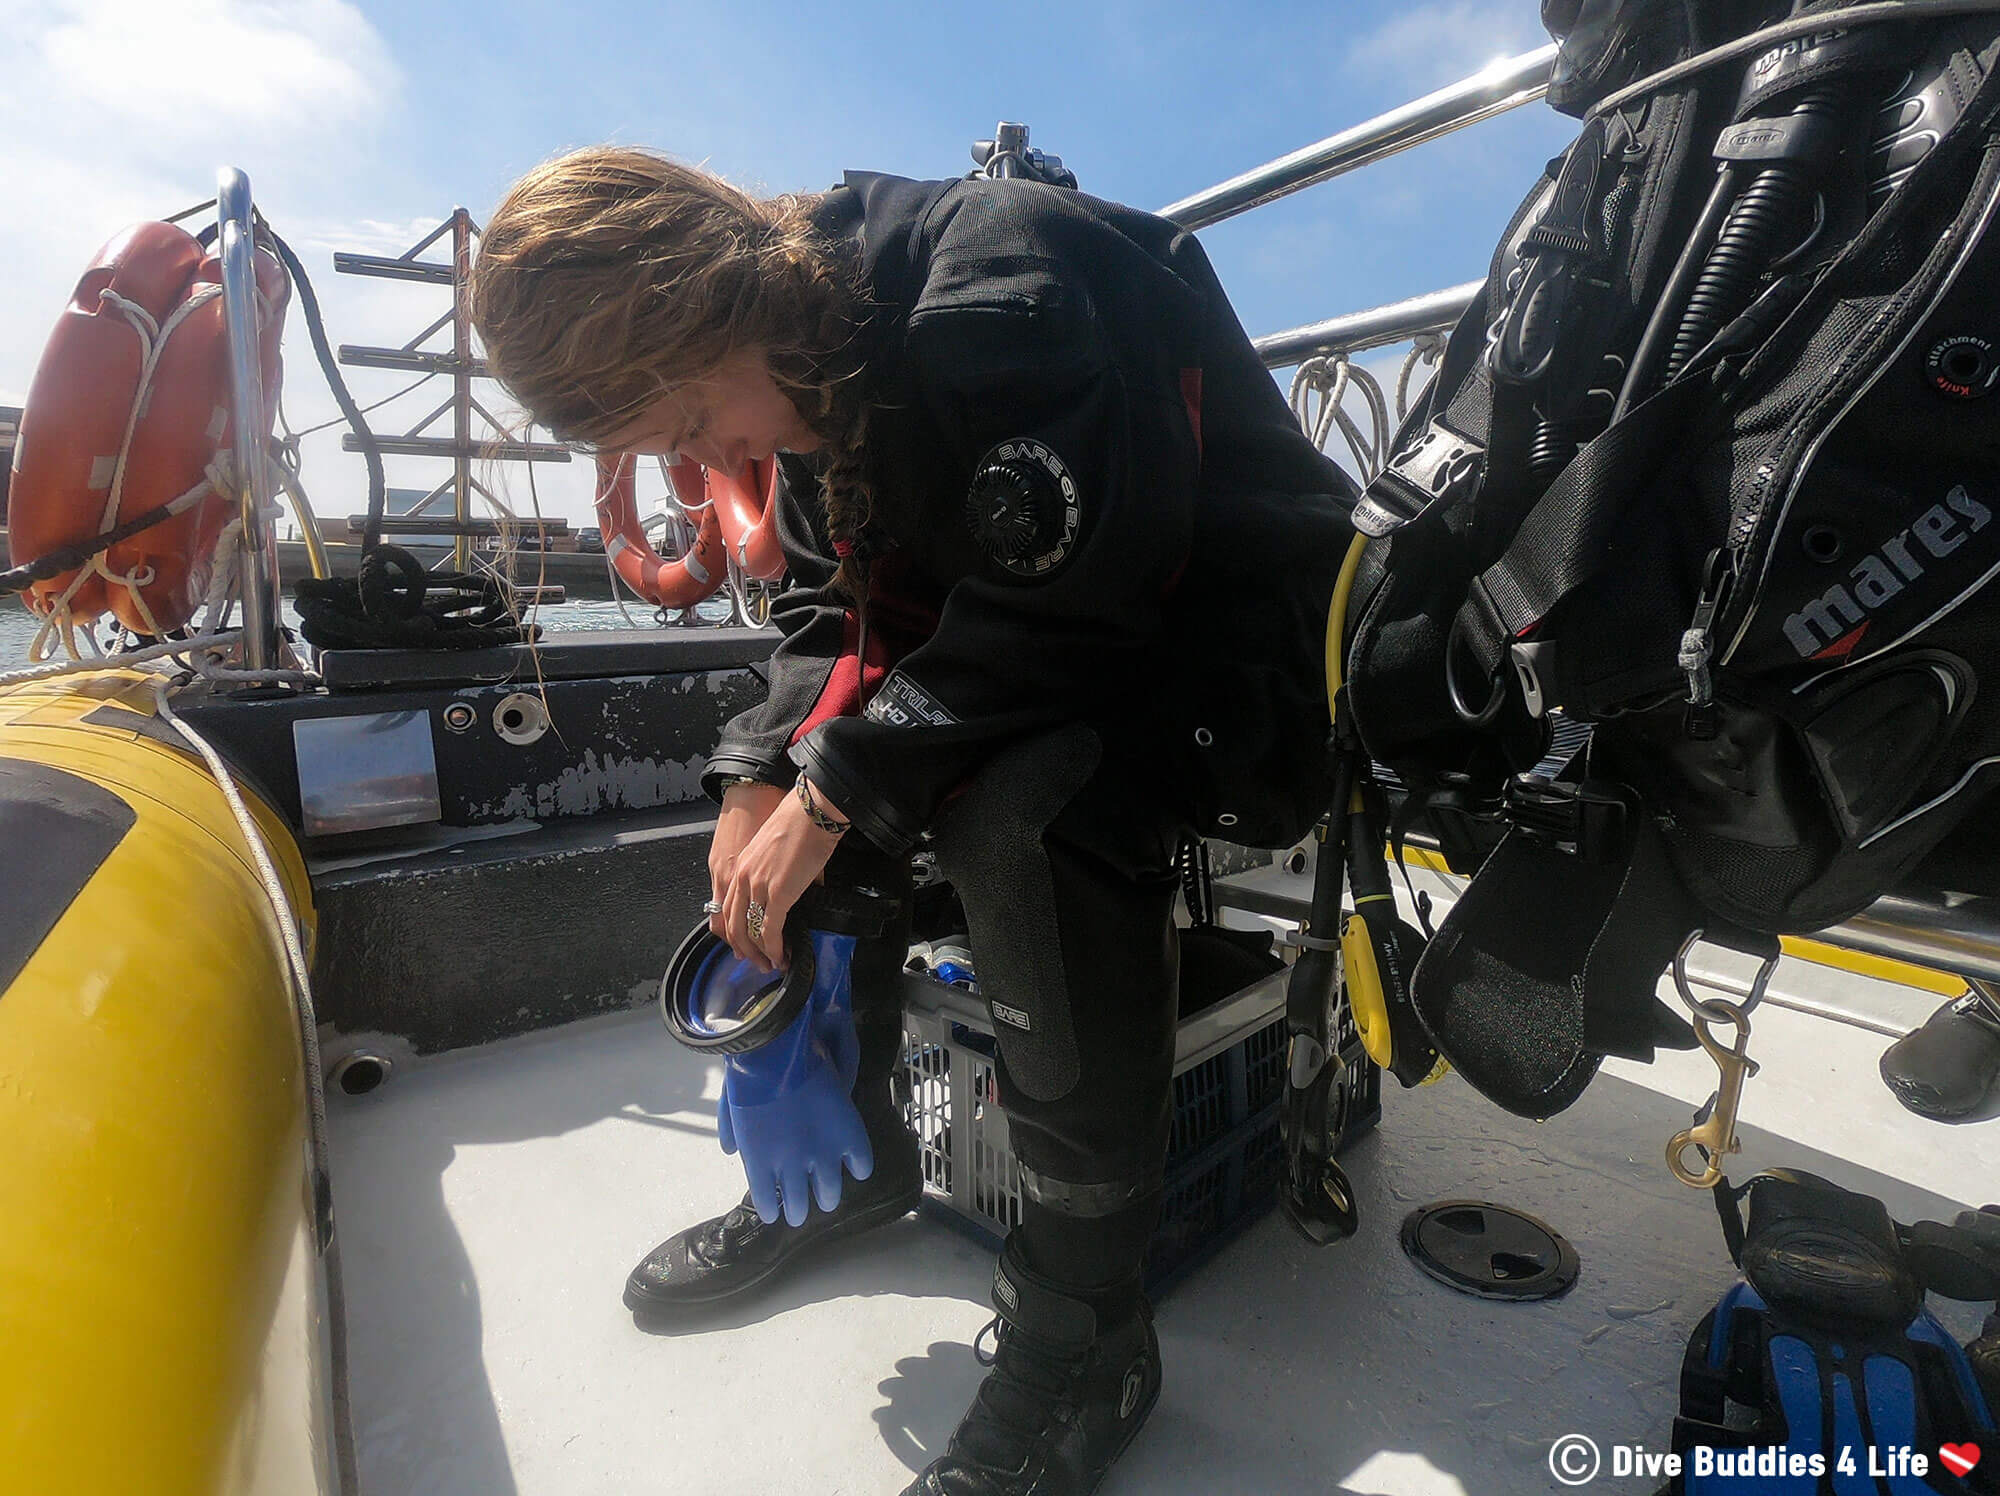 Ali Dealing With Seasickness While Going For A Dive